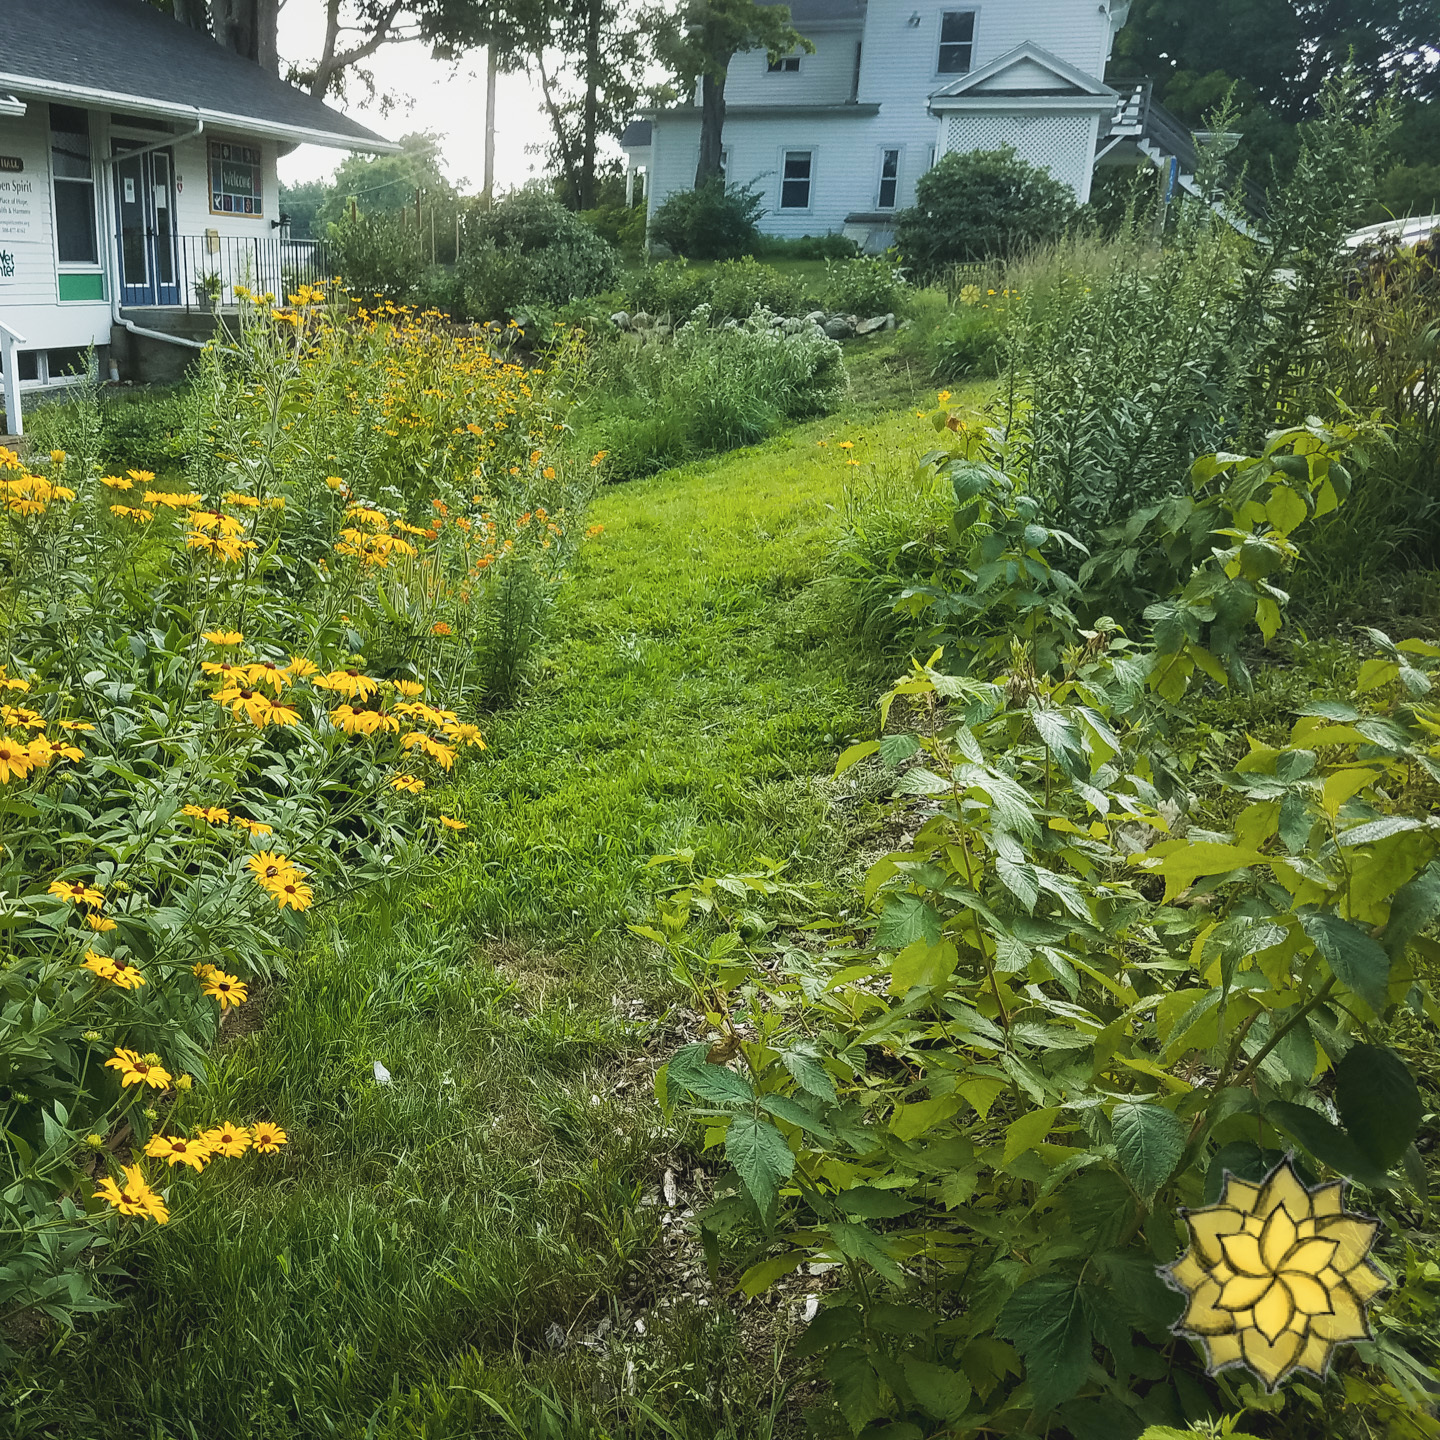 Reformation - This is a garden seeking to deepen the functions of under utilized landscapes.A whole lot of love, community, and care has gone into making this garden a reality.If you are interested in learning more of this garden's creation, there are a host of videos below.